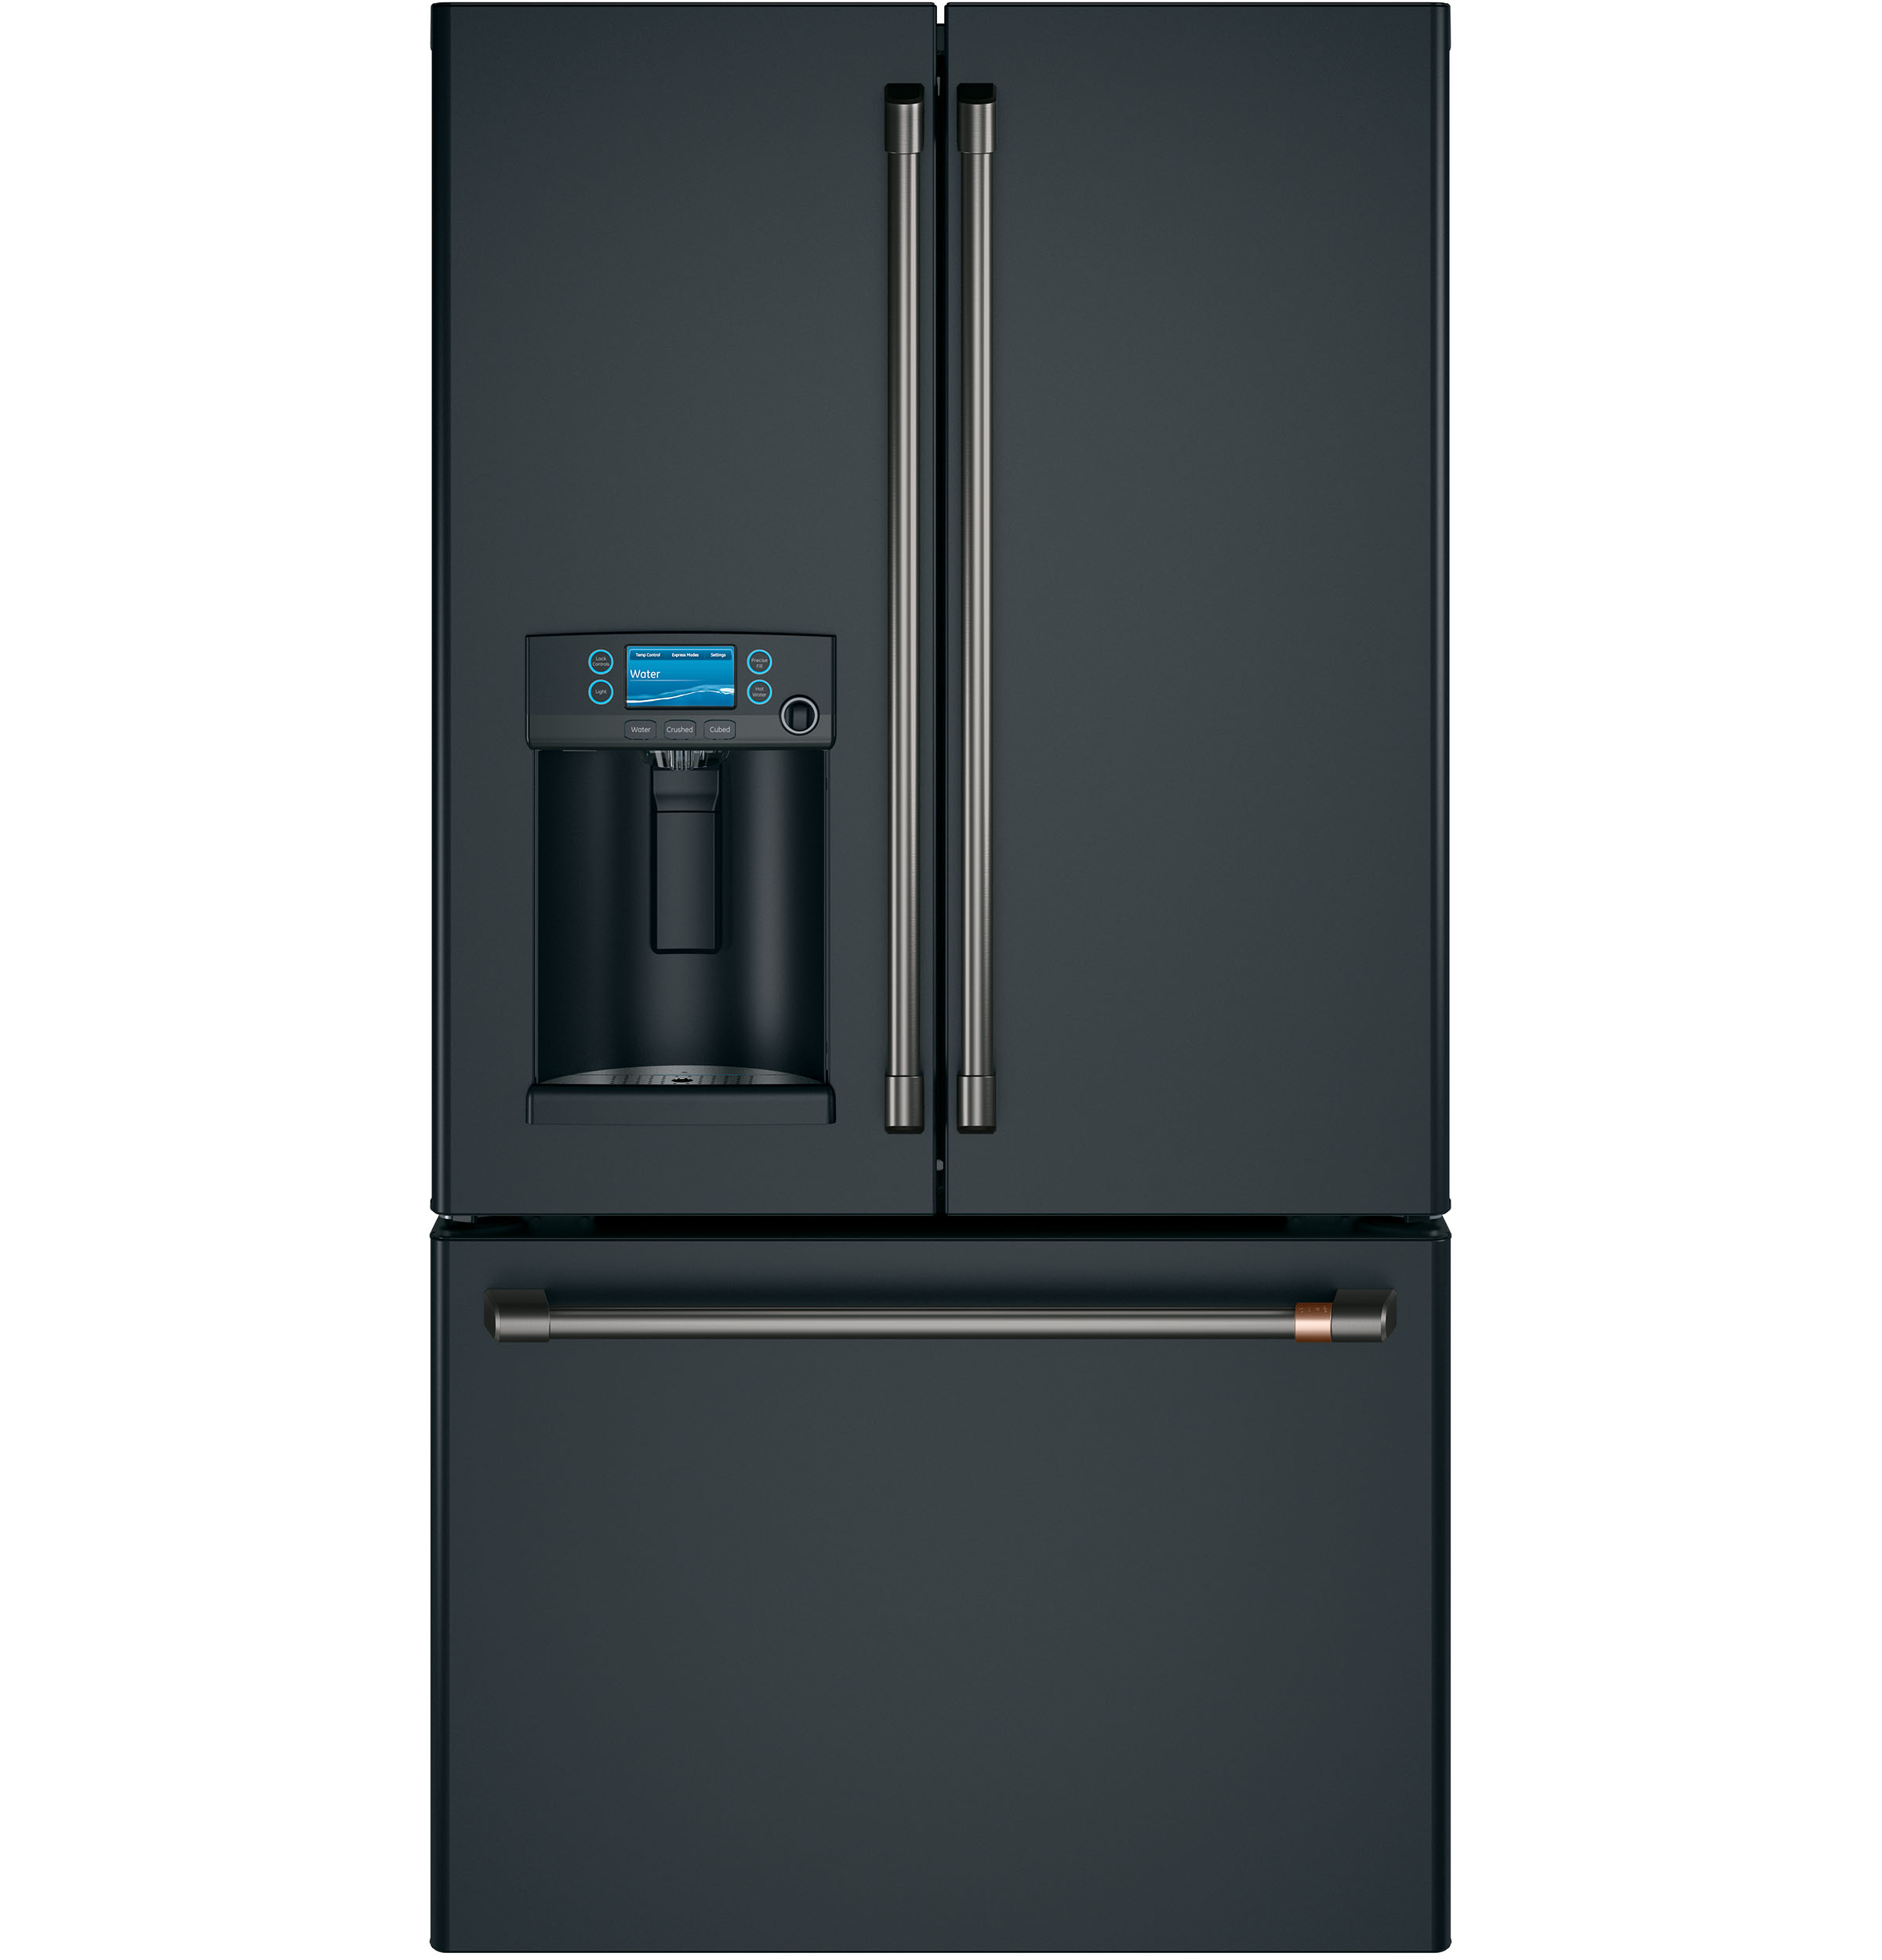 Model: CFE28TP3MD1 | Café™ ENERGY STAR® 27.8 Cu. Ft. French-Door Refrigerator with Hot Water Dispenser